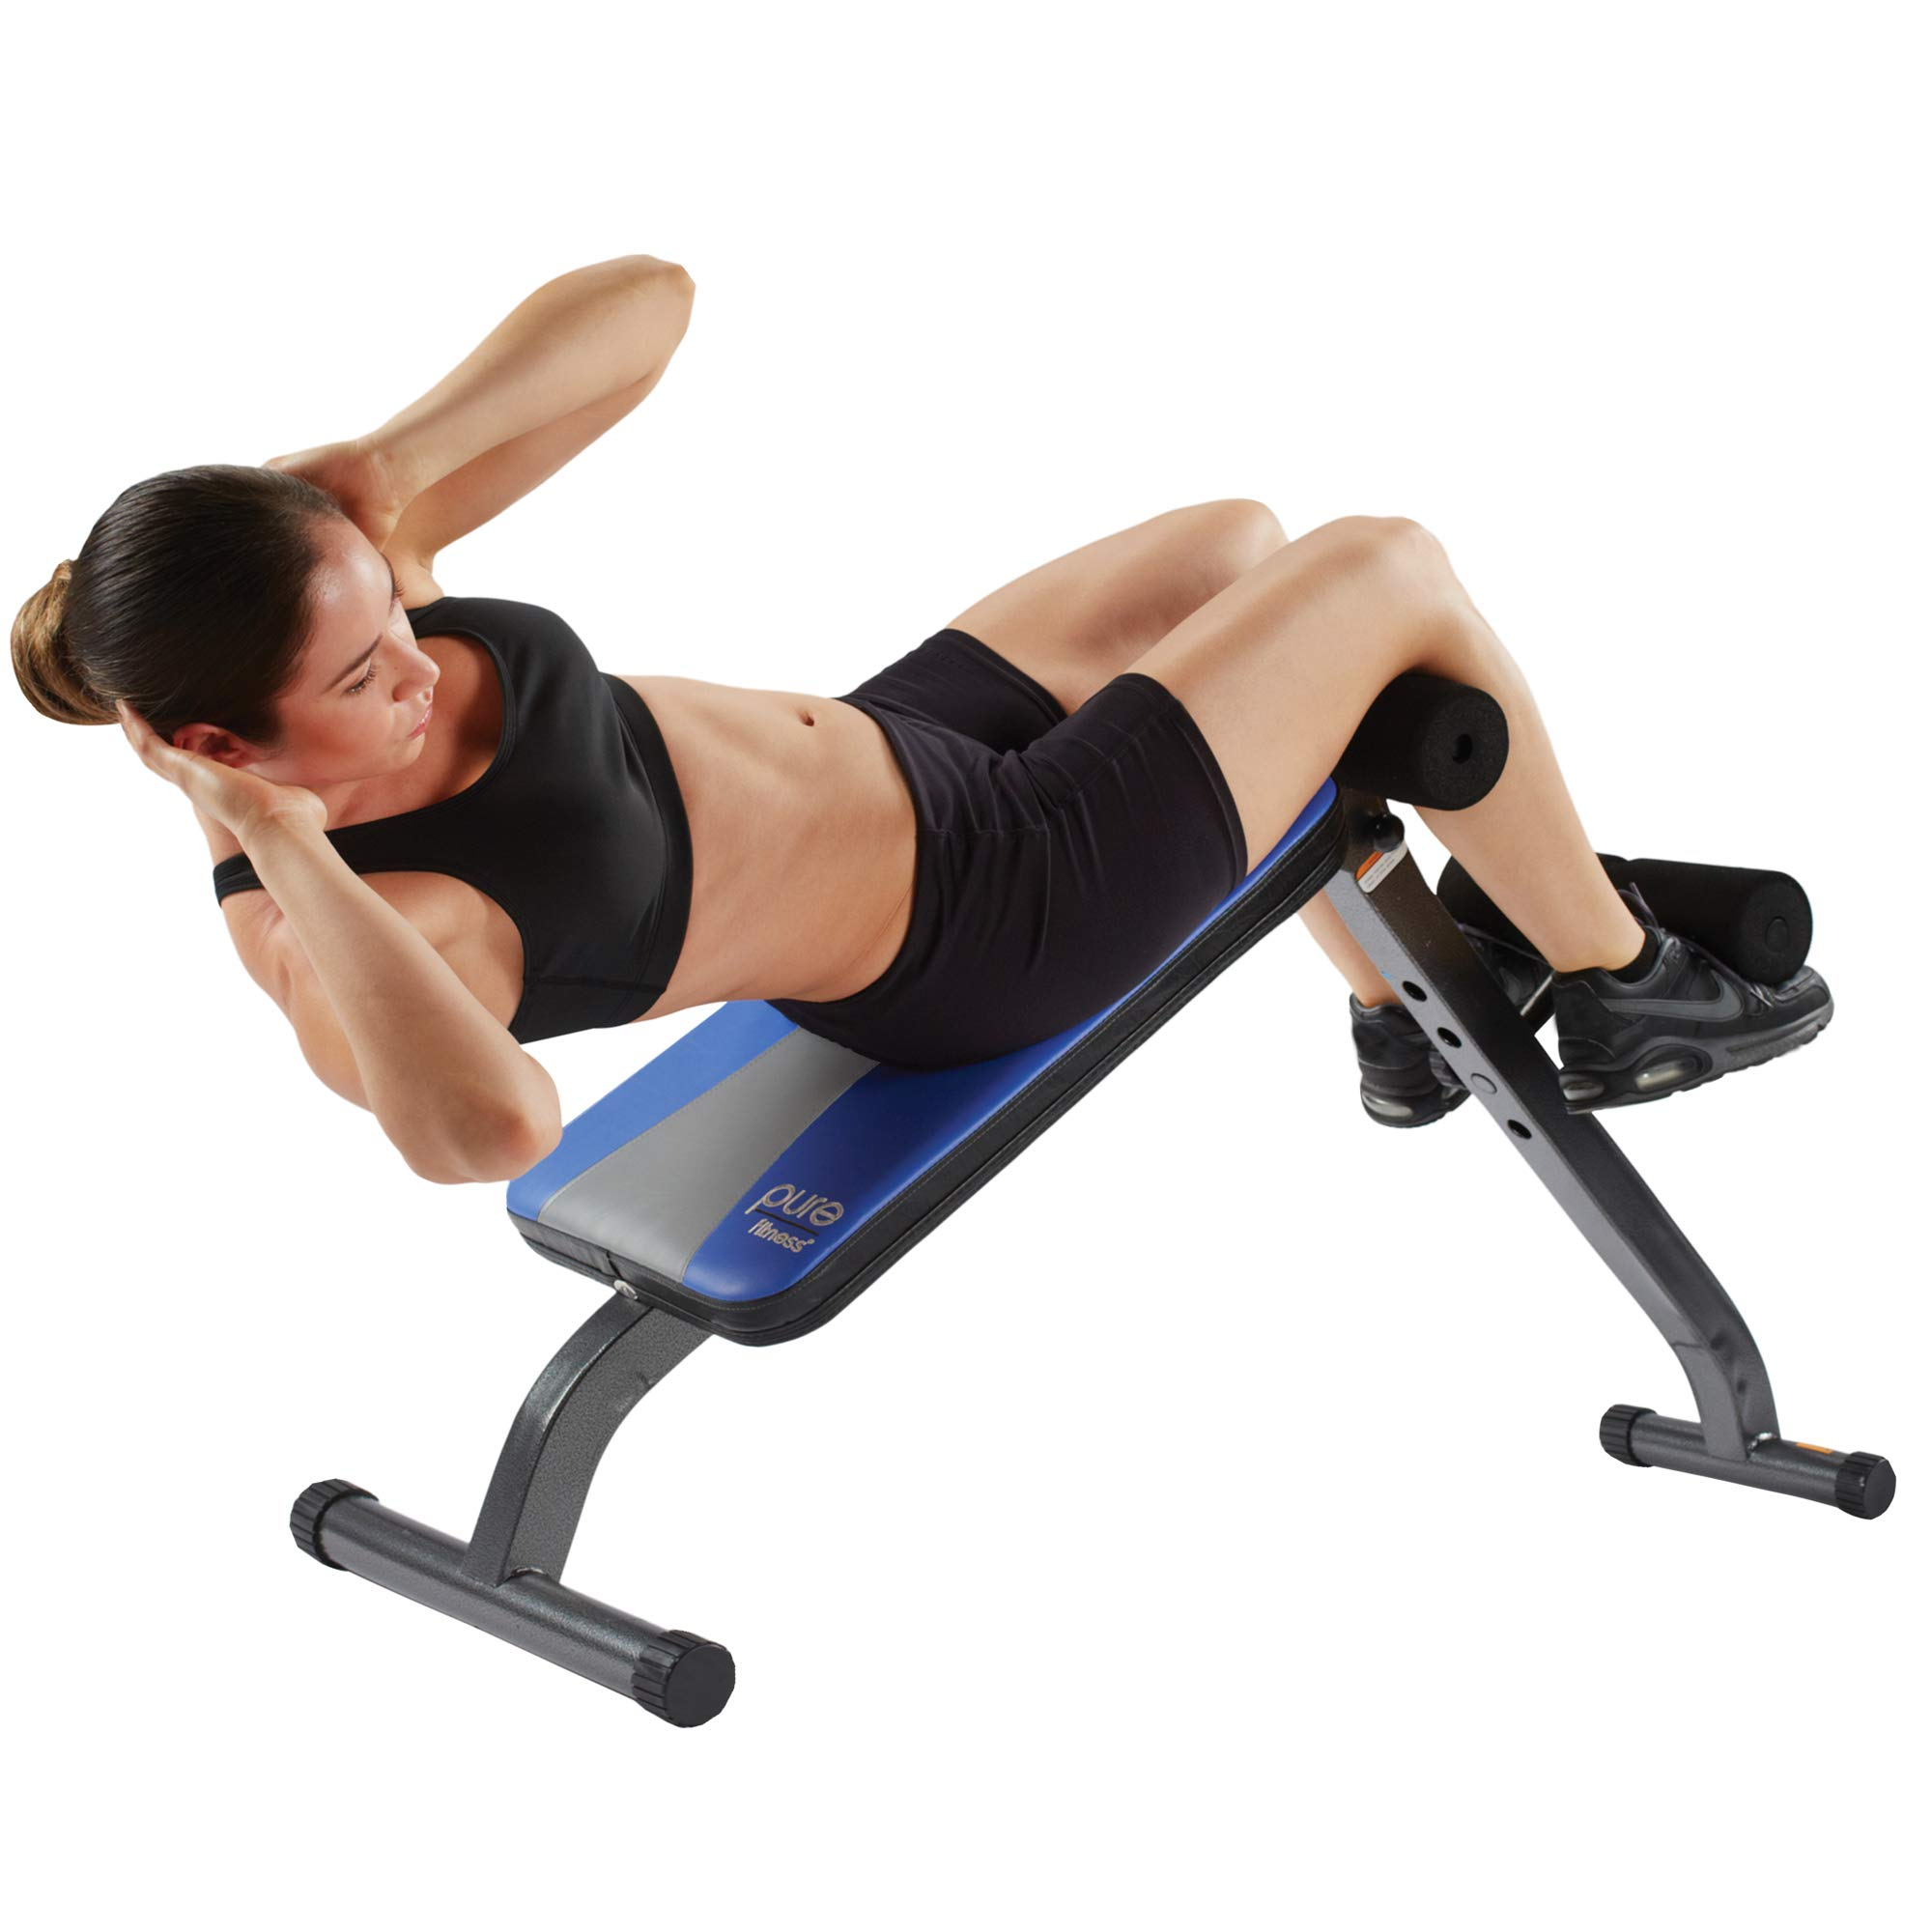 Adjustable Ab Crunch Sit-Up Bench for toning and training